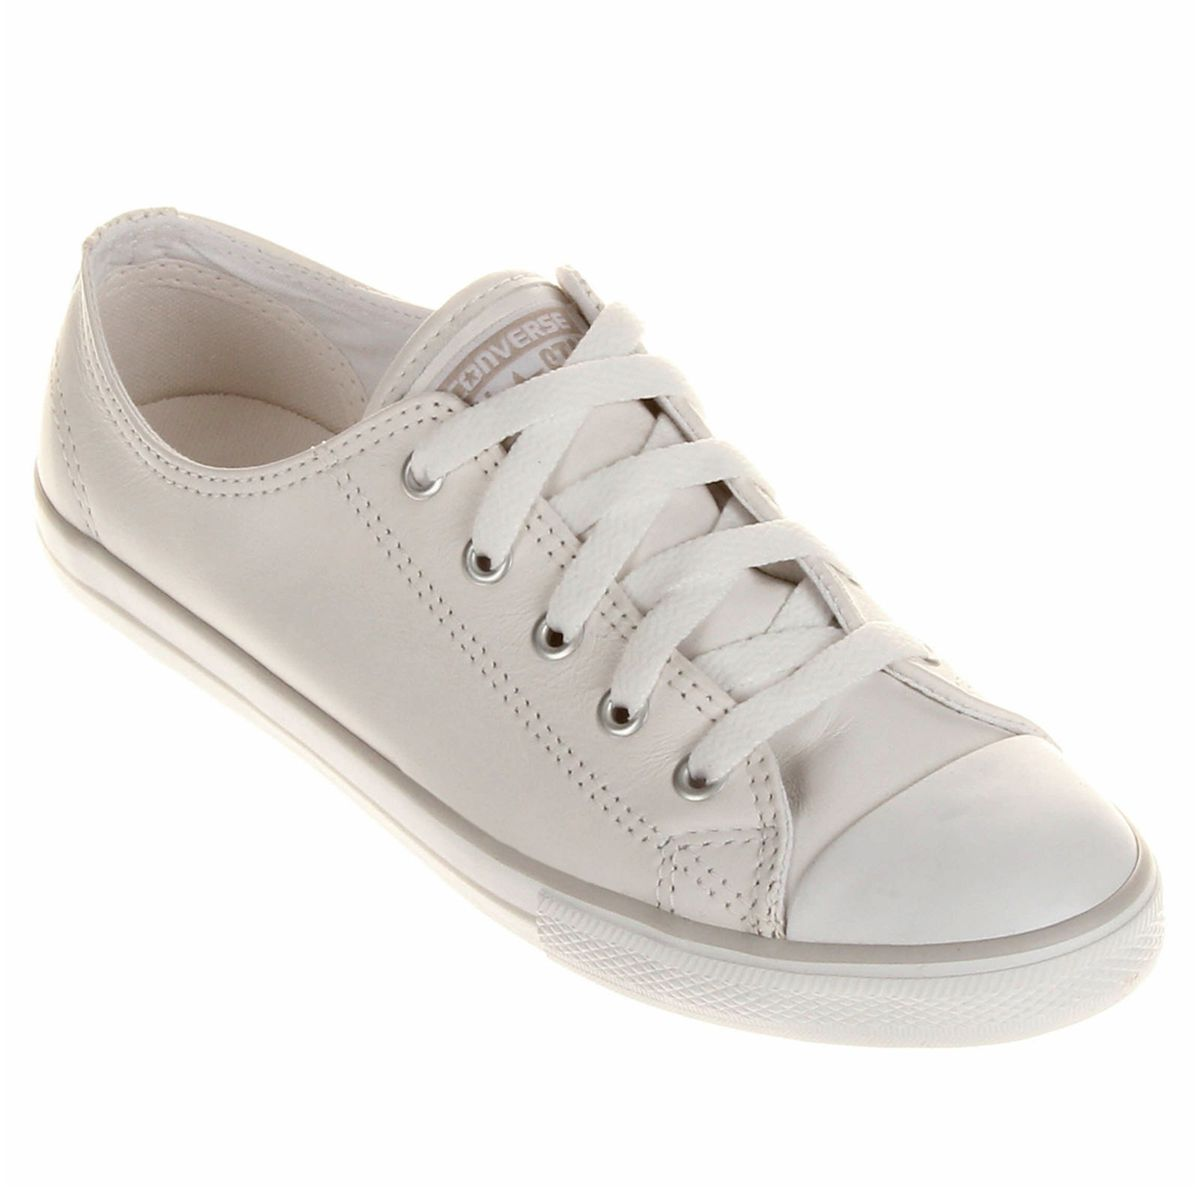 71081b140f1 Tênis Converse All Star Ct As Dainty Leather Ox Bege (cru)